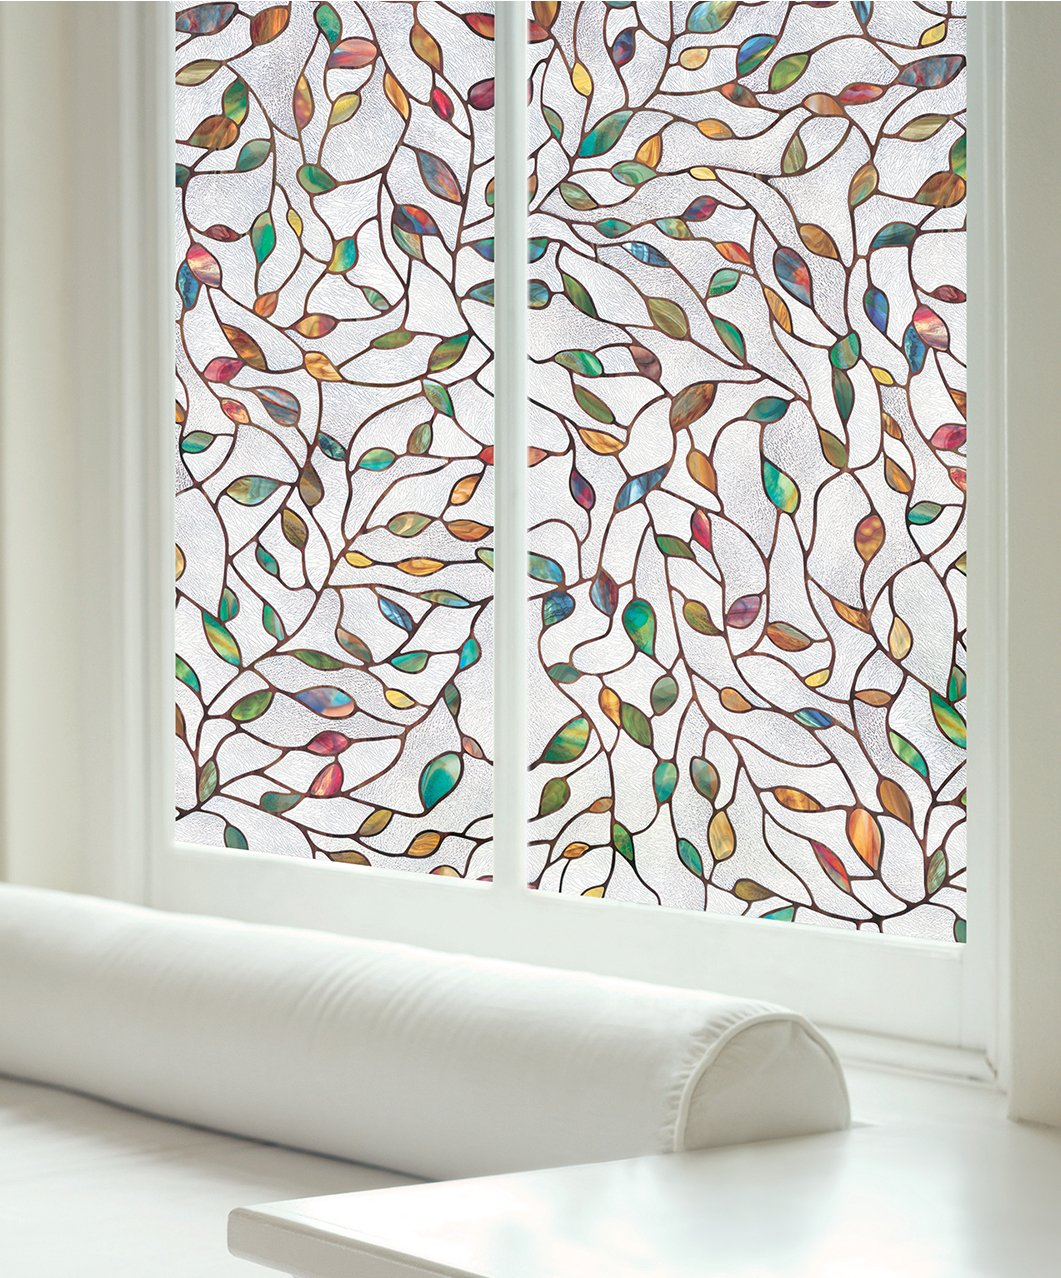 Artscape 02-3021 New Leaf Window Film 24'' x 36'', Clear, Etched, Textured, Multi Color by ARTSCAPE